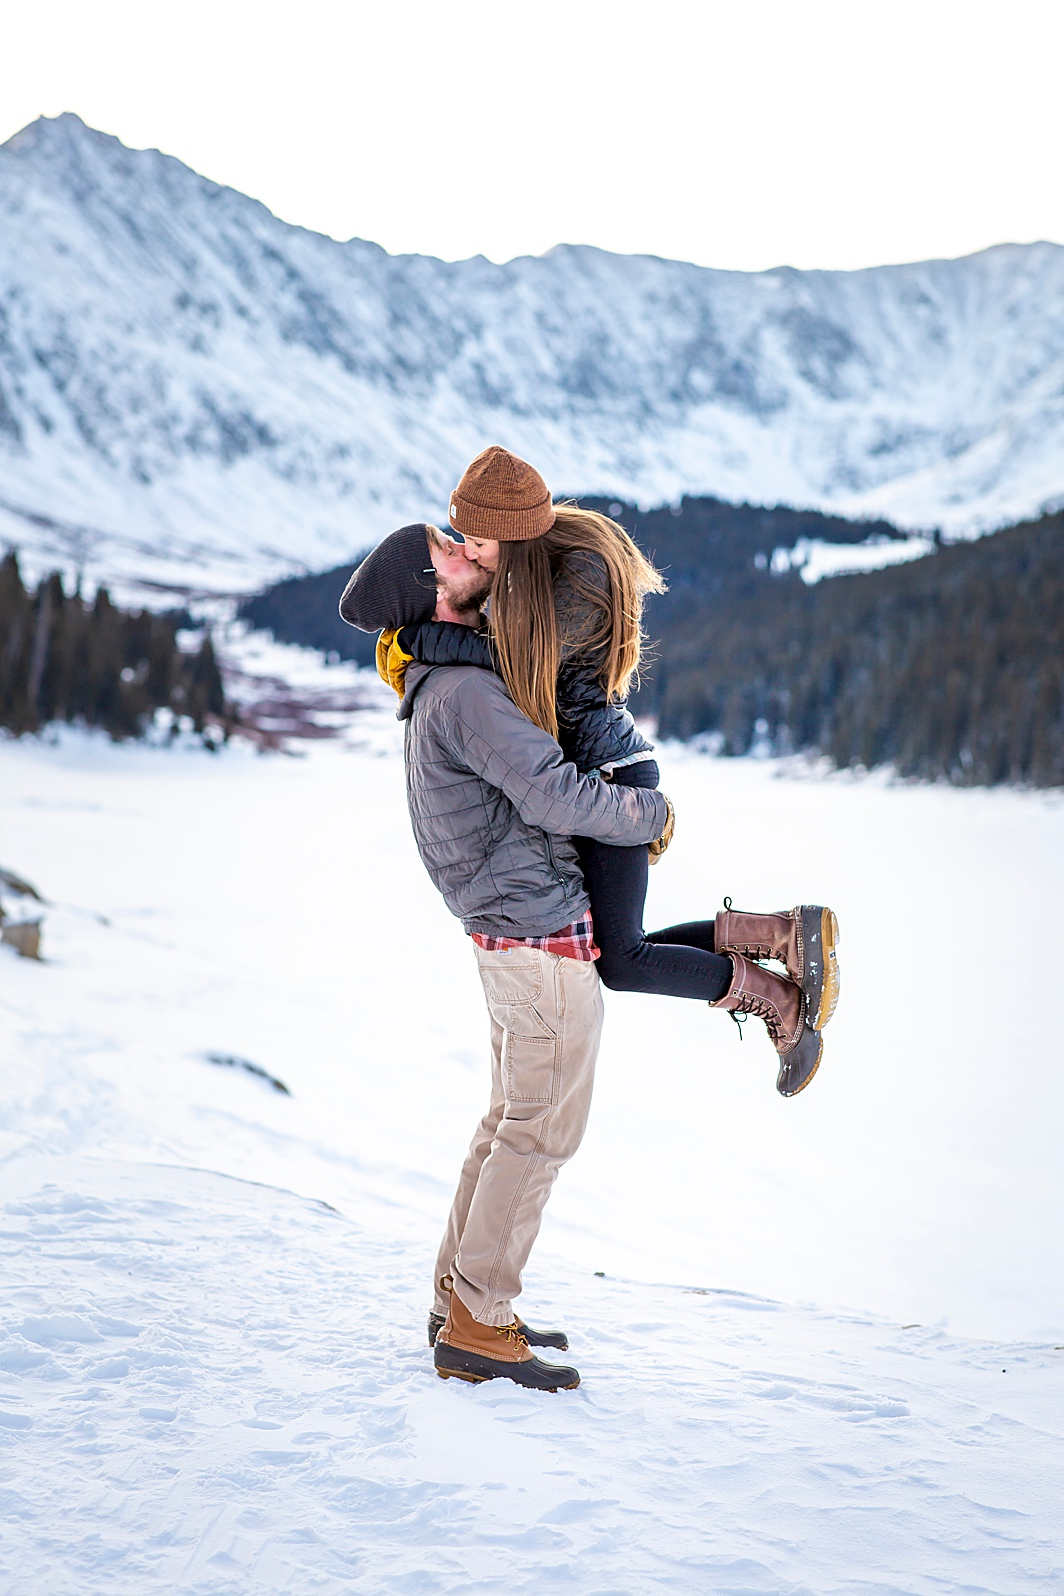 Man lifts woman for a kiss in Breckenridge, Colorado. Engagement Photo taken by Hillary Shedd Photography, Colorado Wedding Photographer.